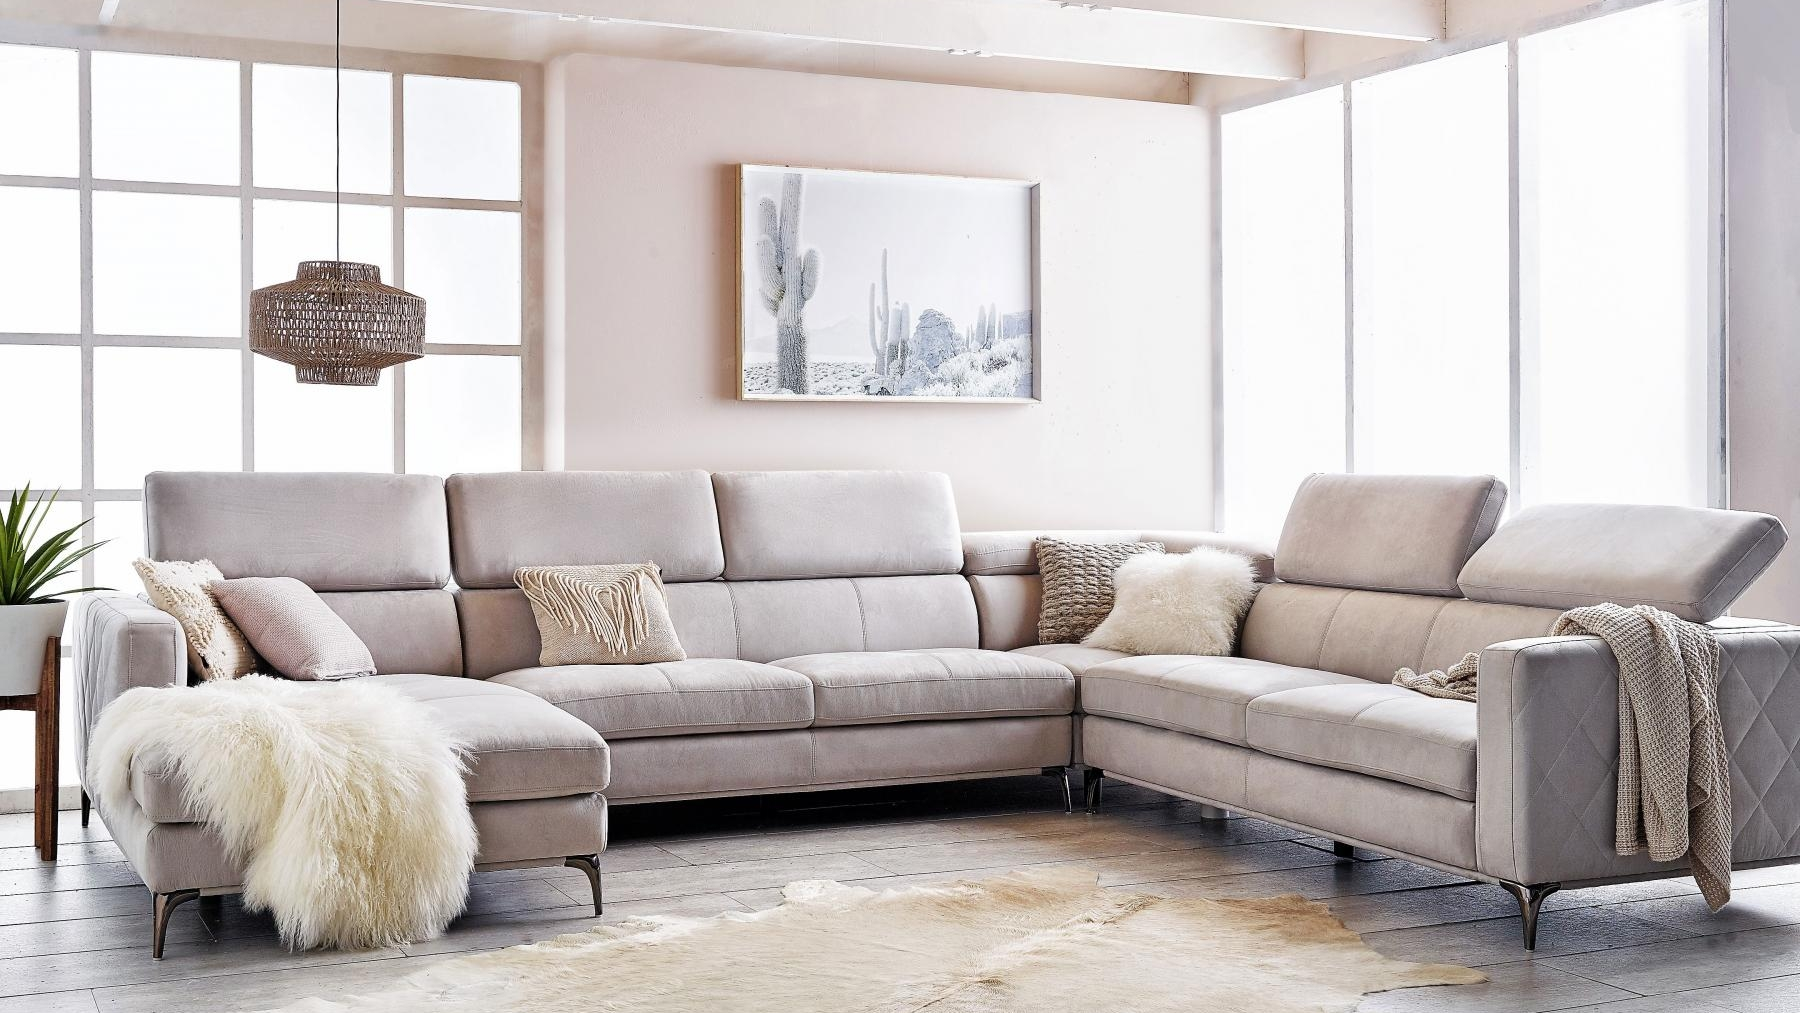 Sofa For Sale Houston Buy Houston 6 Seater Fabric Modular Sofa With Chaise Harvey